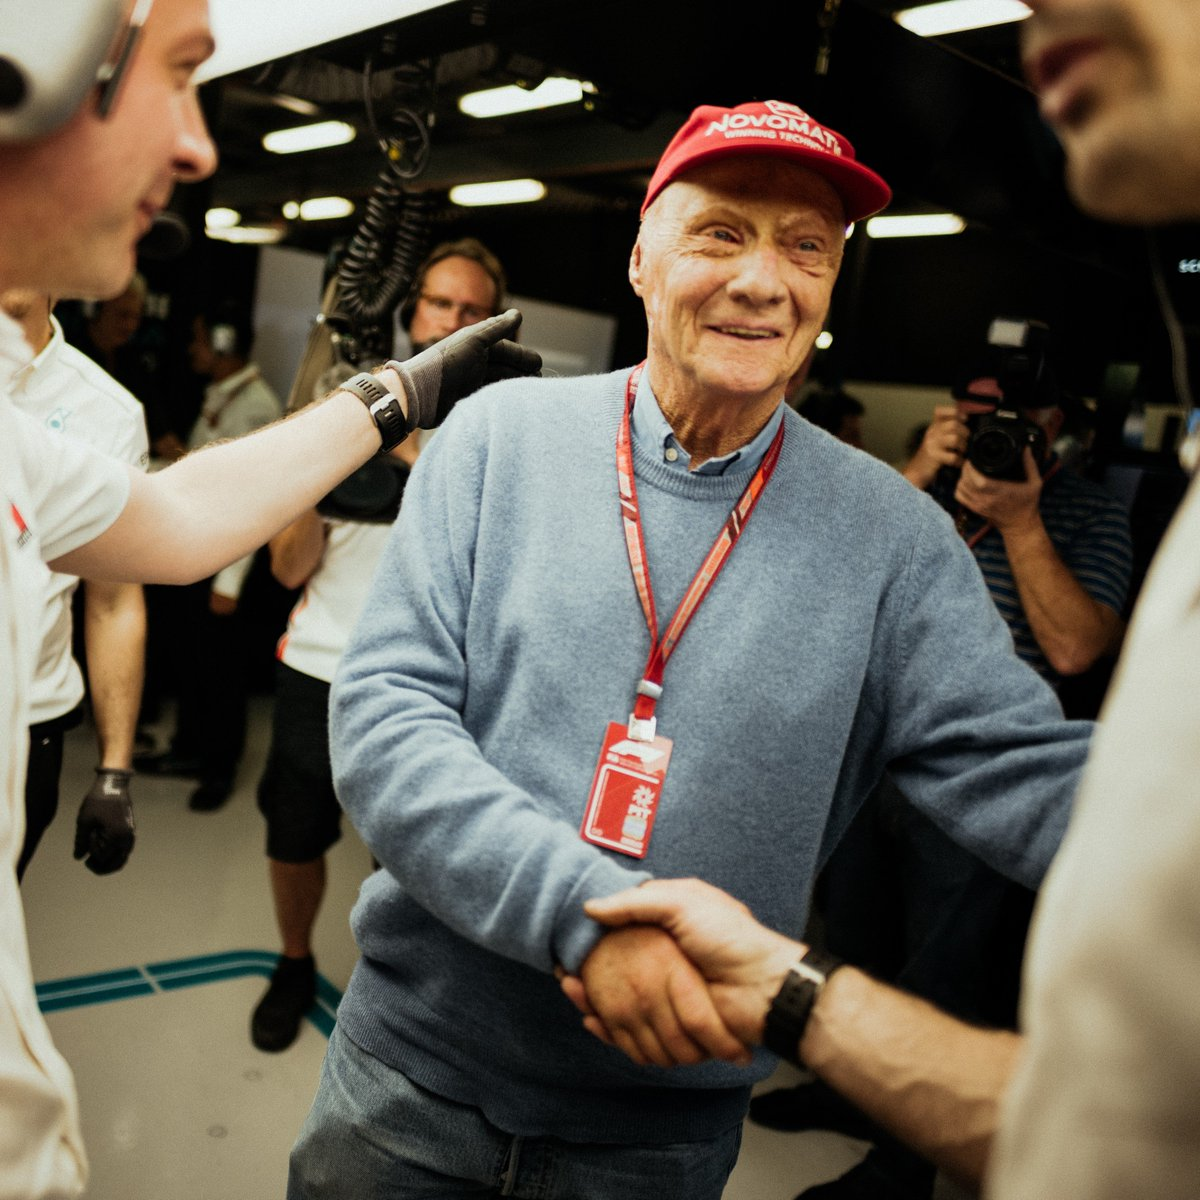 """Our team has lost a guiding light. Niki was always brutally honest - and utterly loyal. It was a privilege to count him among our team and moving to witness just how much it meant to him to be part of the team's success."" - Toto  Statement 👉 http://mb4.me/uWkLFFqw"